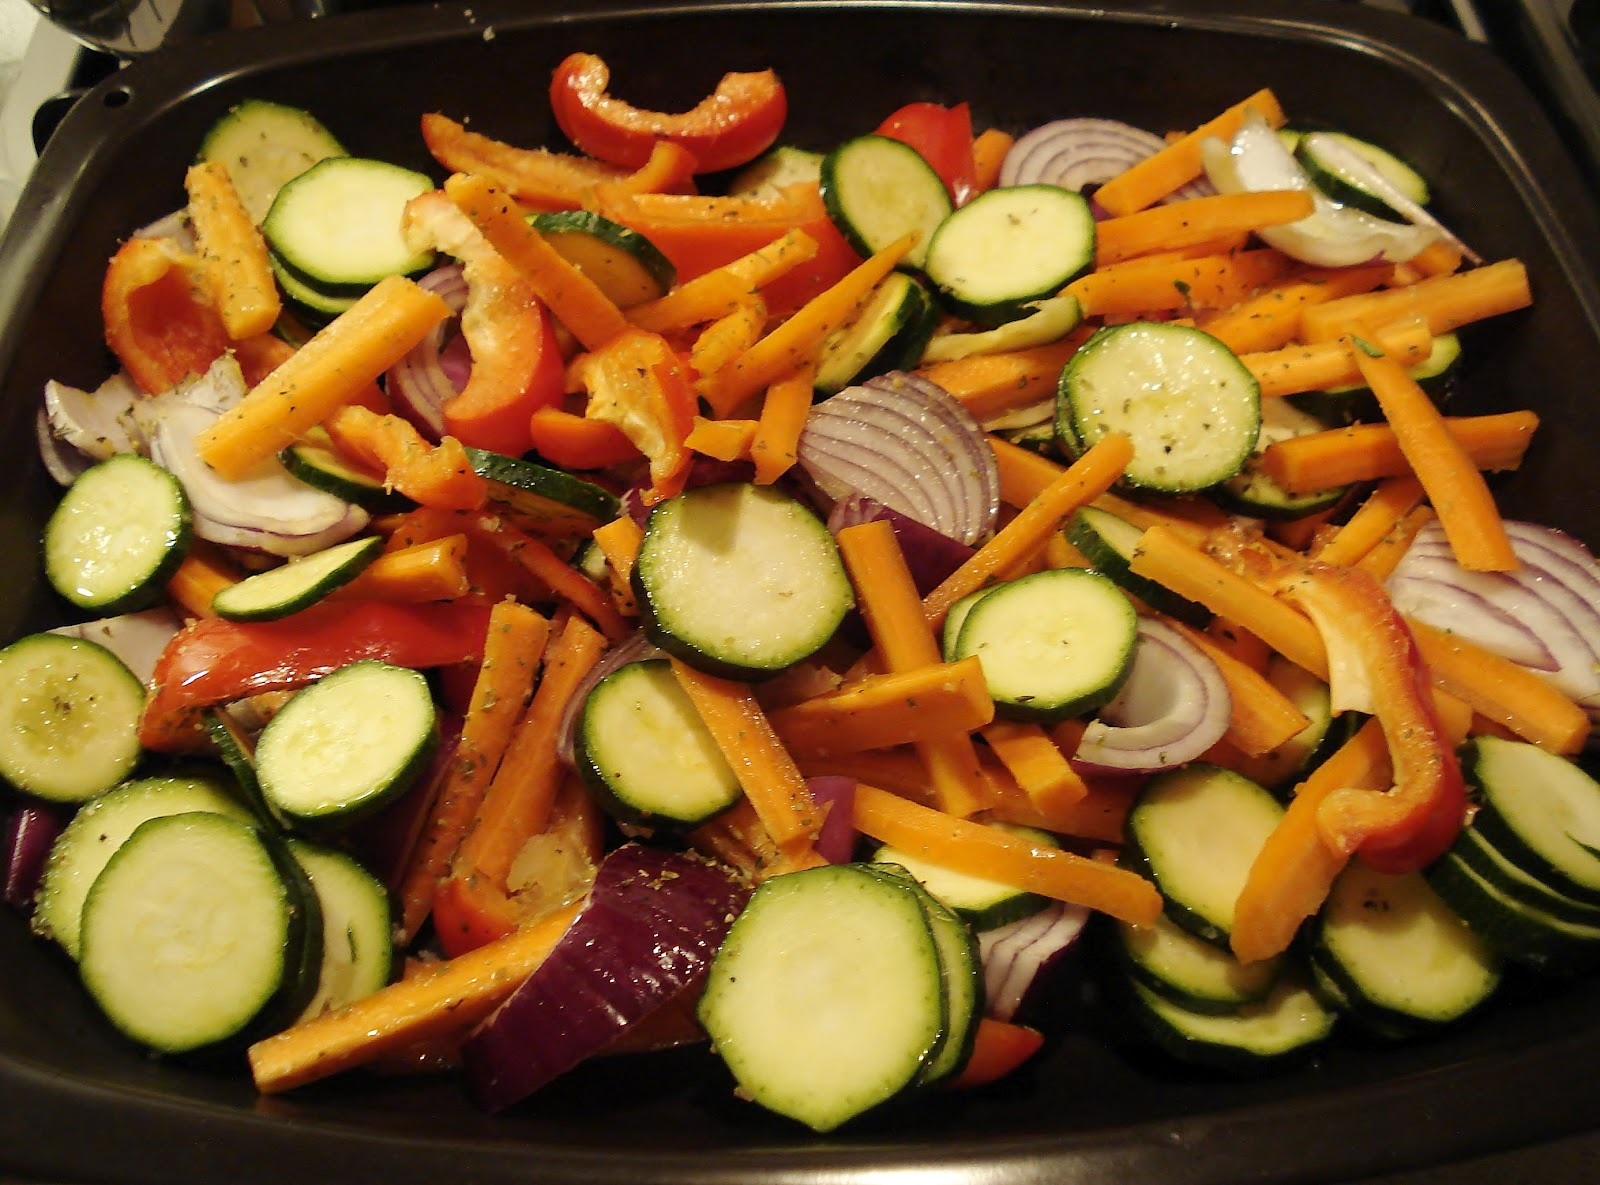 Roasted vegetables before oven